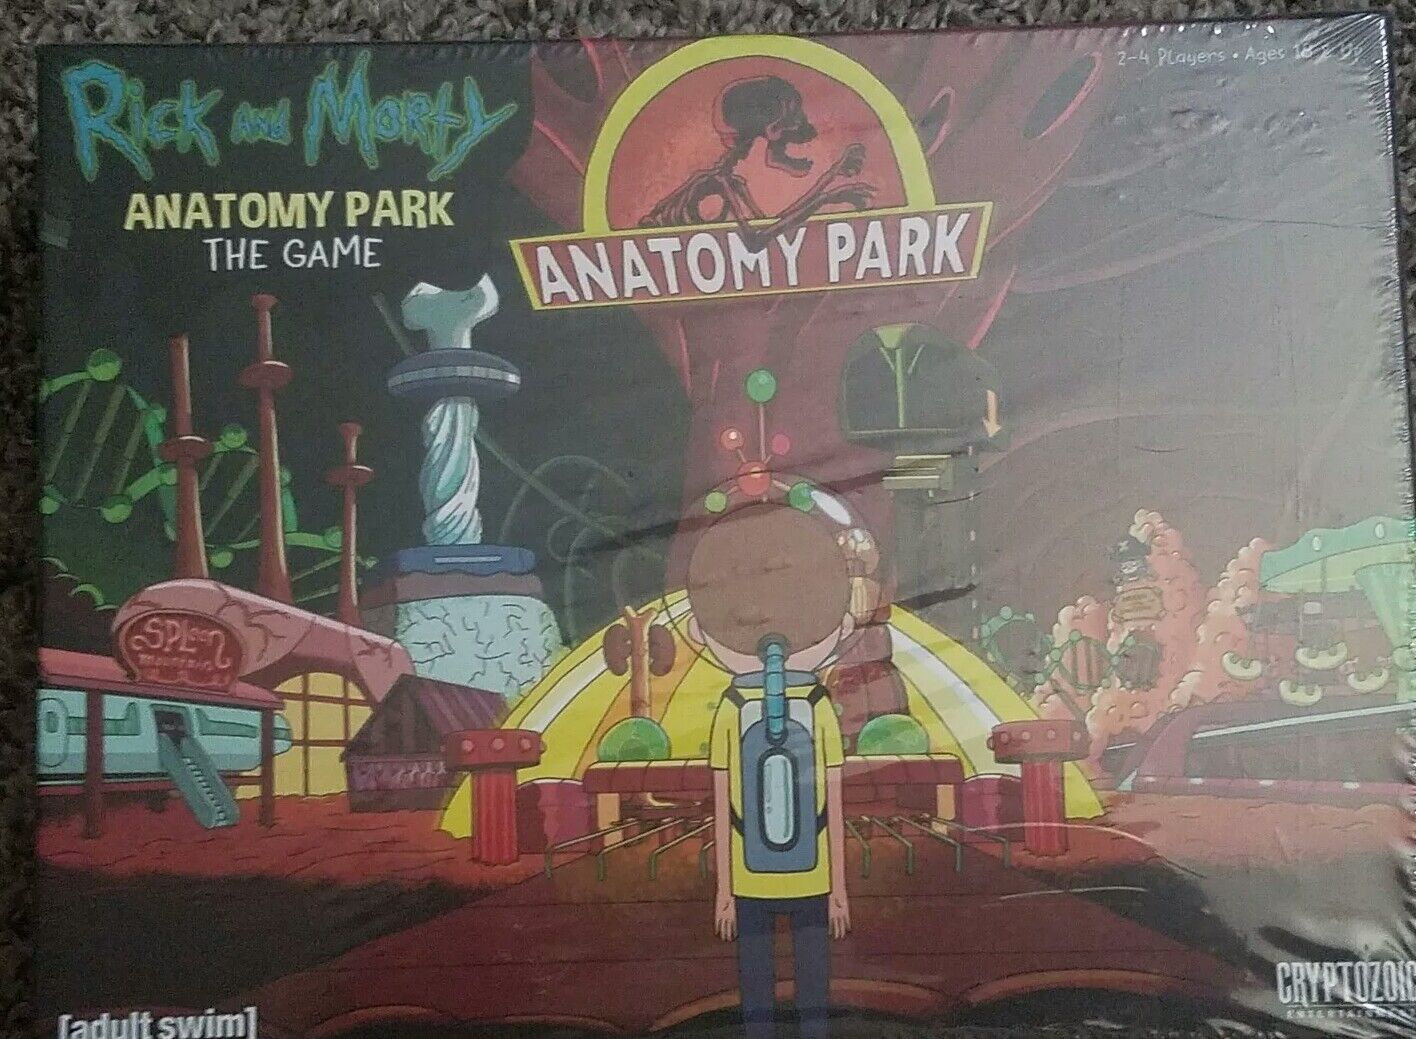 Rick and Morty Anatomy Park Board Game - Cryptozoic Entertainment [adult  swim]